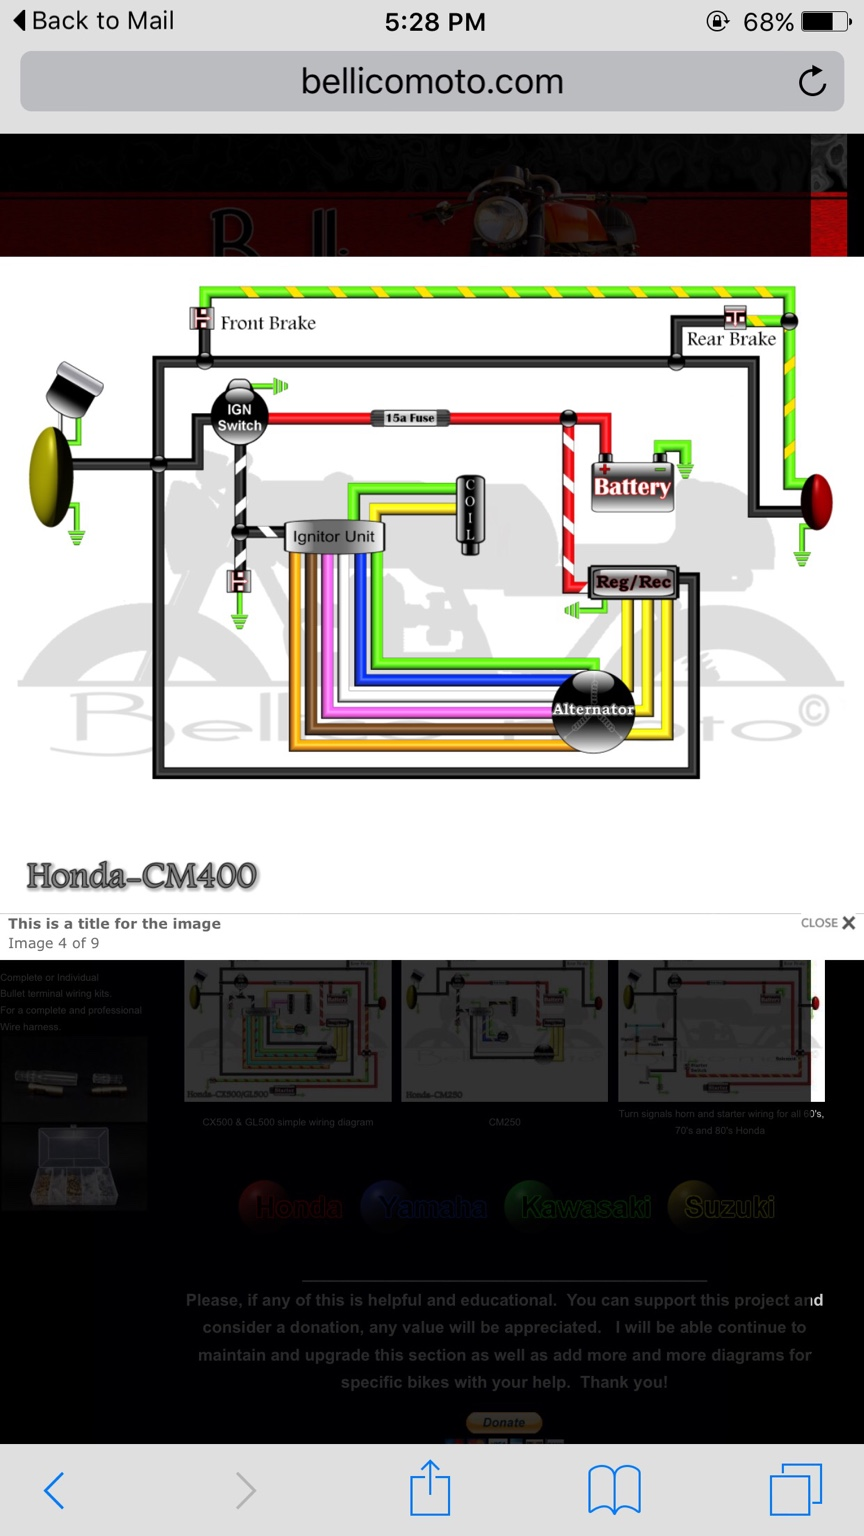 Honda Cm400a Wiring Diagram Explained Diagrams Gl1100 Cm400 Trusted Atc 200 Help